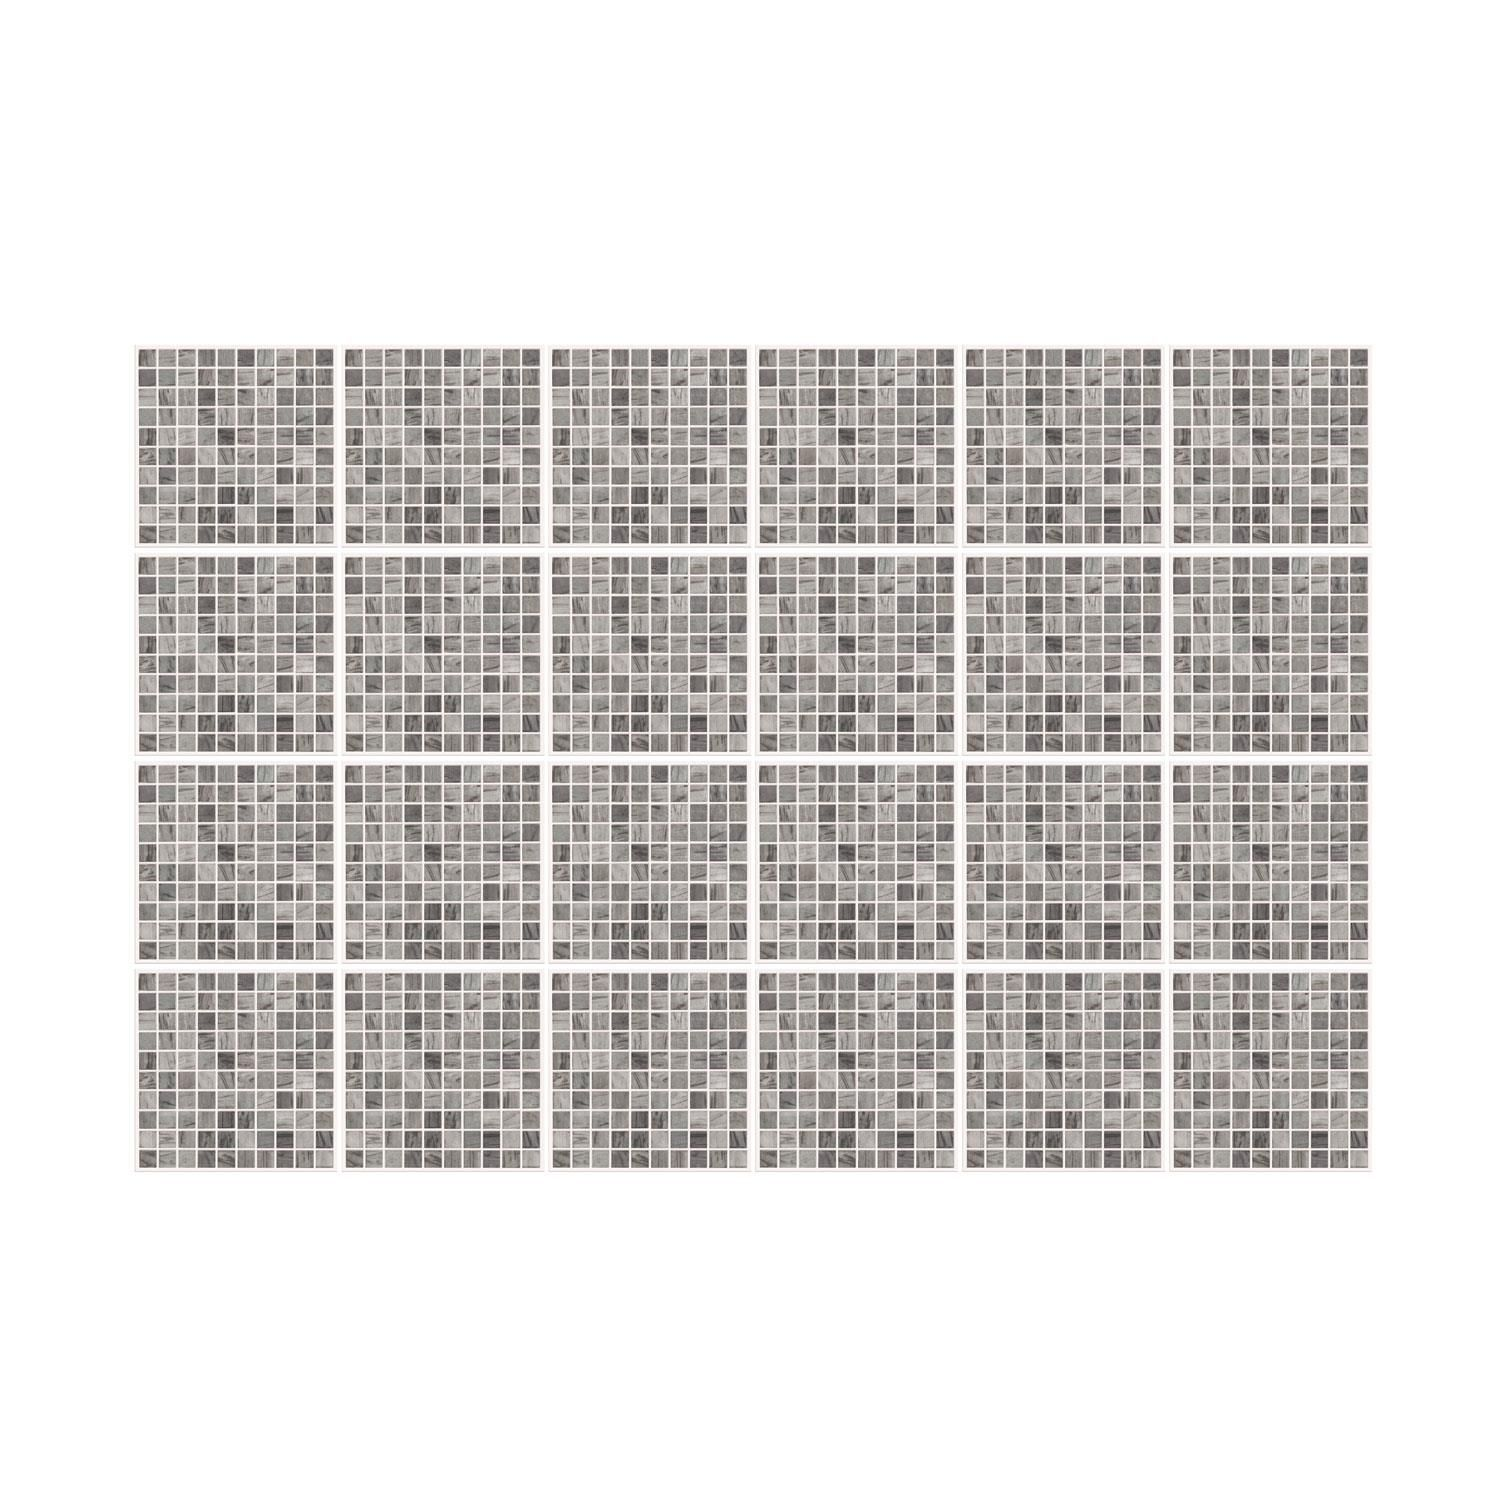 Picasso Grey Marble Mosaic Wall Tile Sticker Set - 15cm (6inch) - 24pcs one pack Self Adhesive DIY Wall Sticker